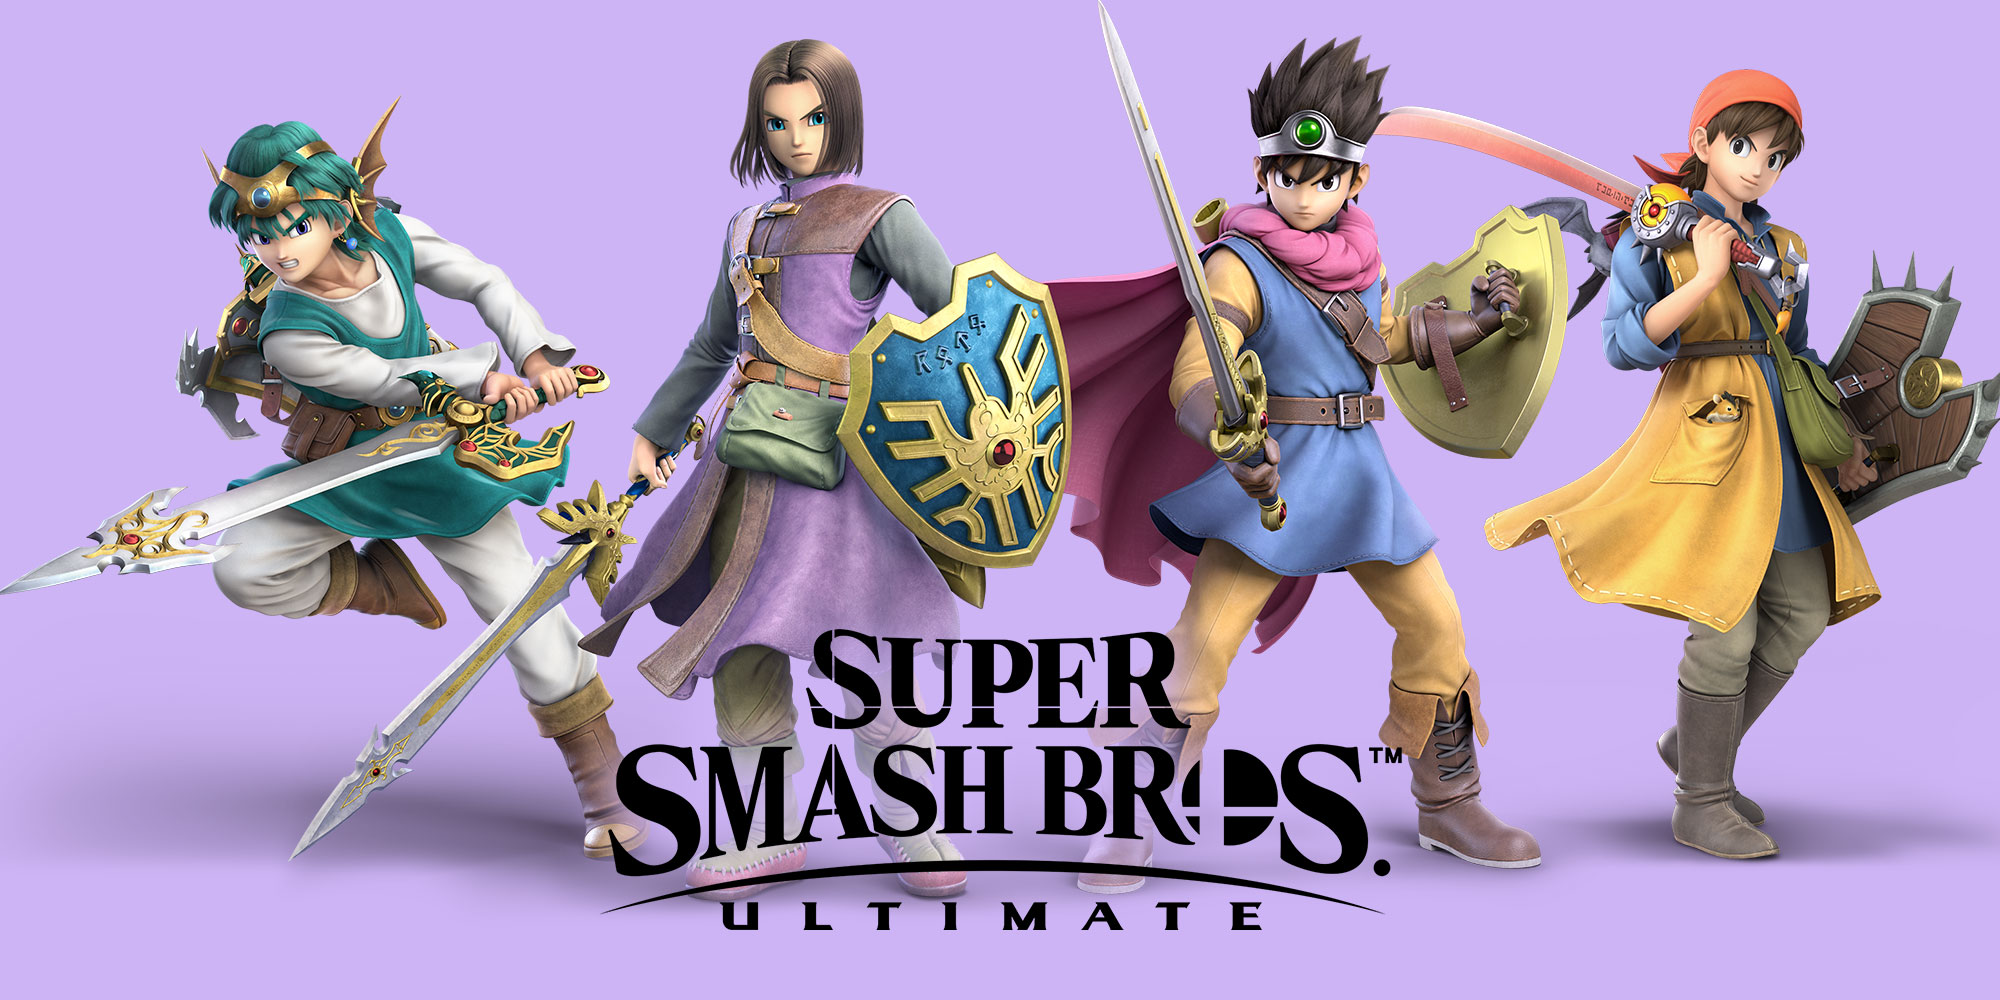 De held uit DRAGON QUEST komt naar Super Smash Bros. Ultimate op 31 juli!